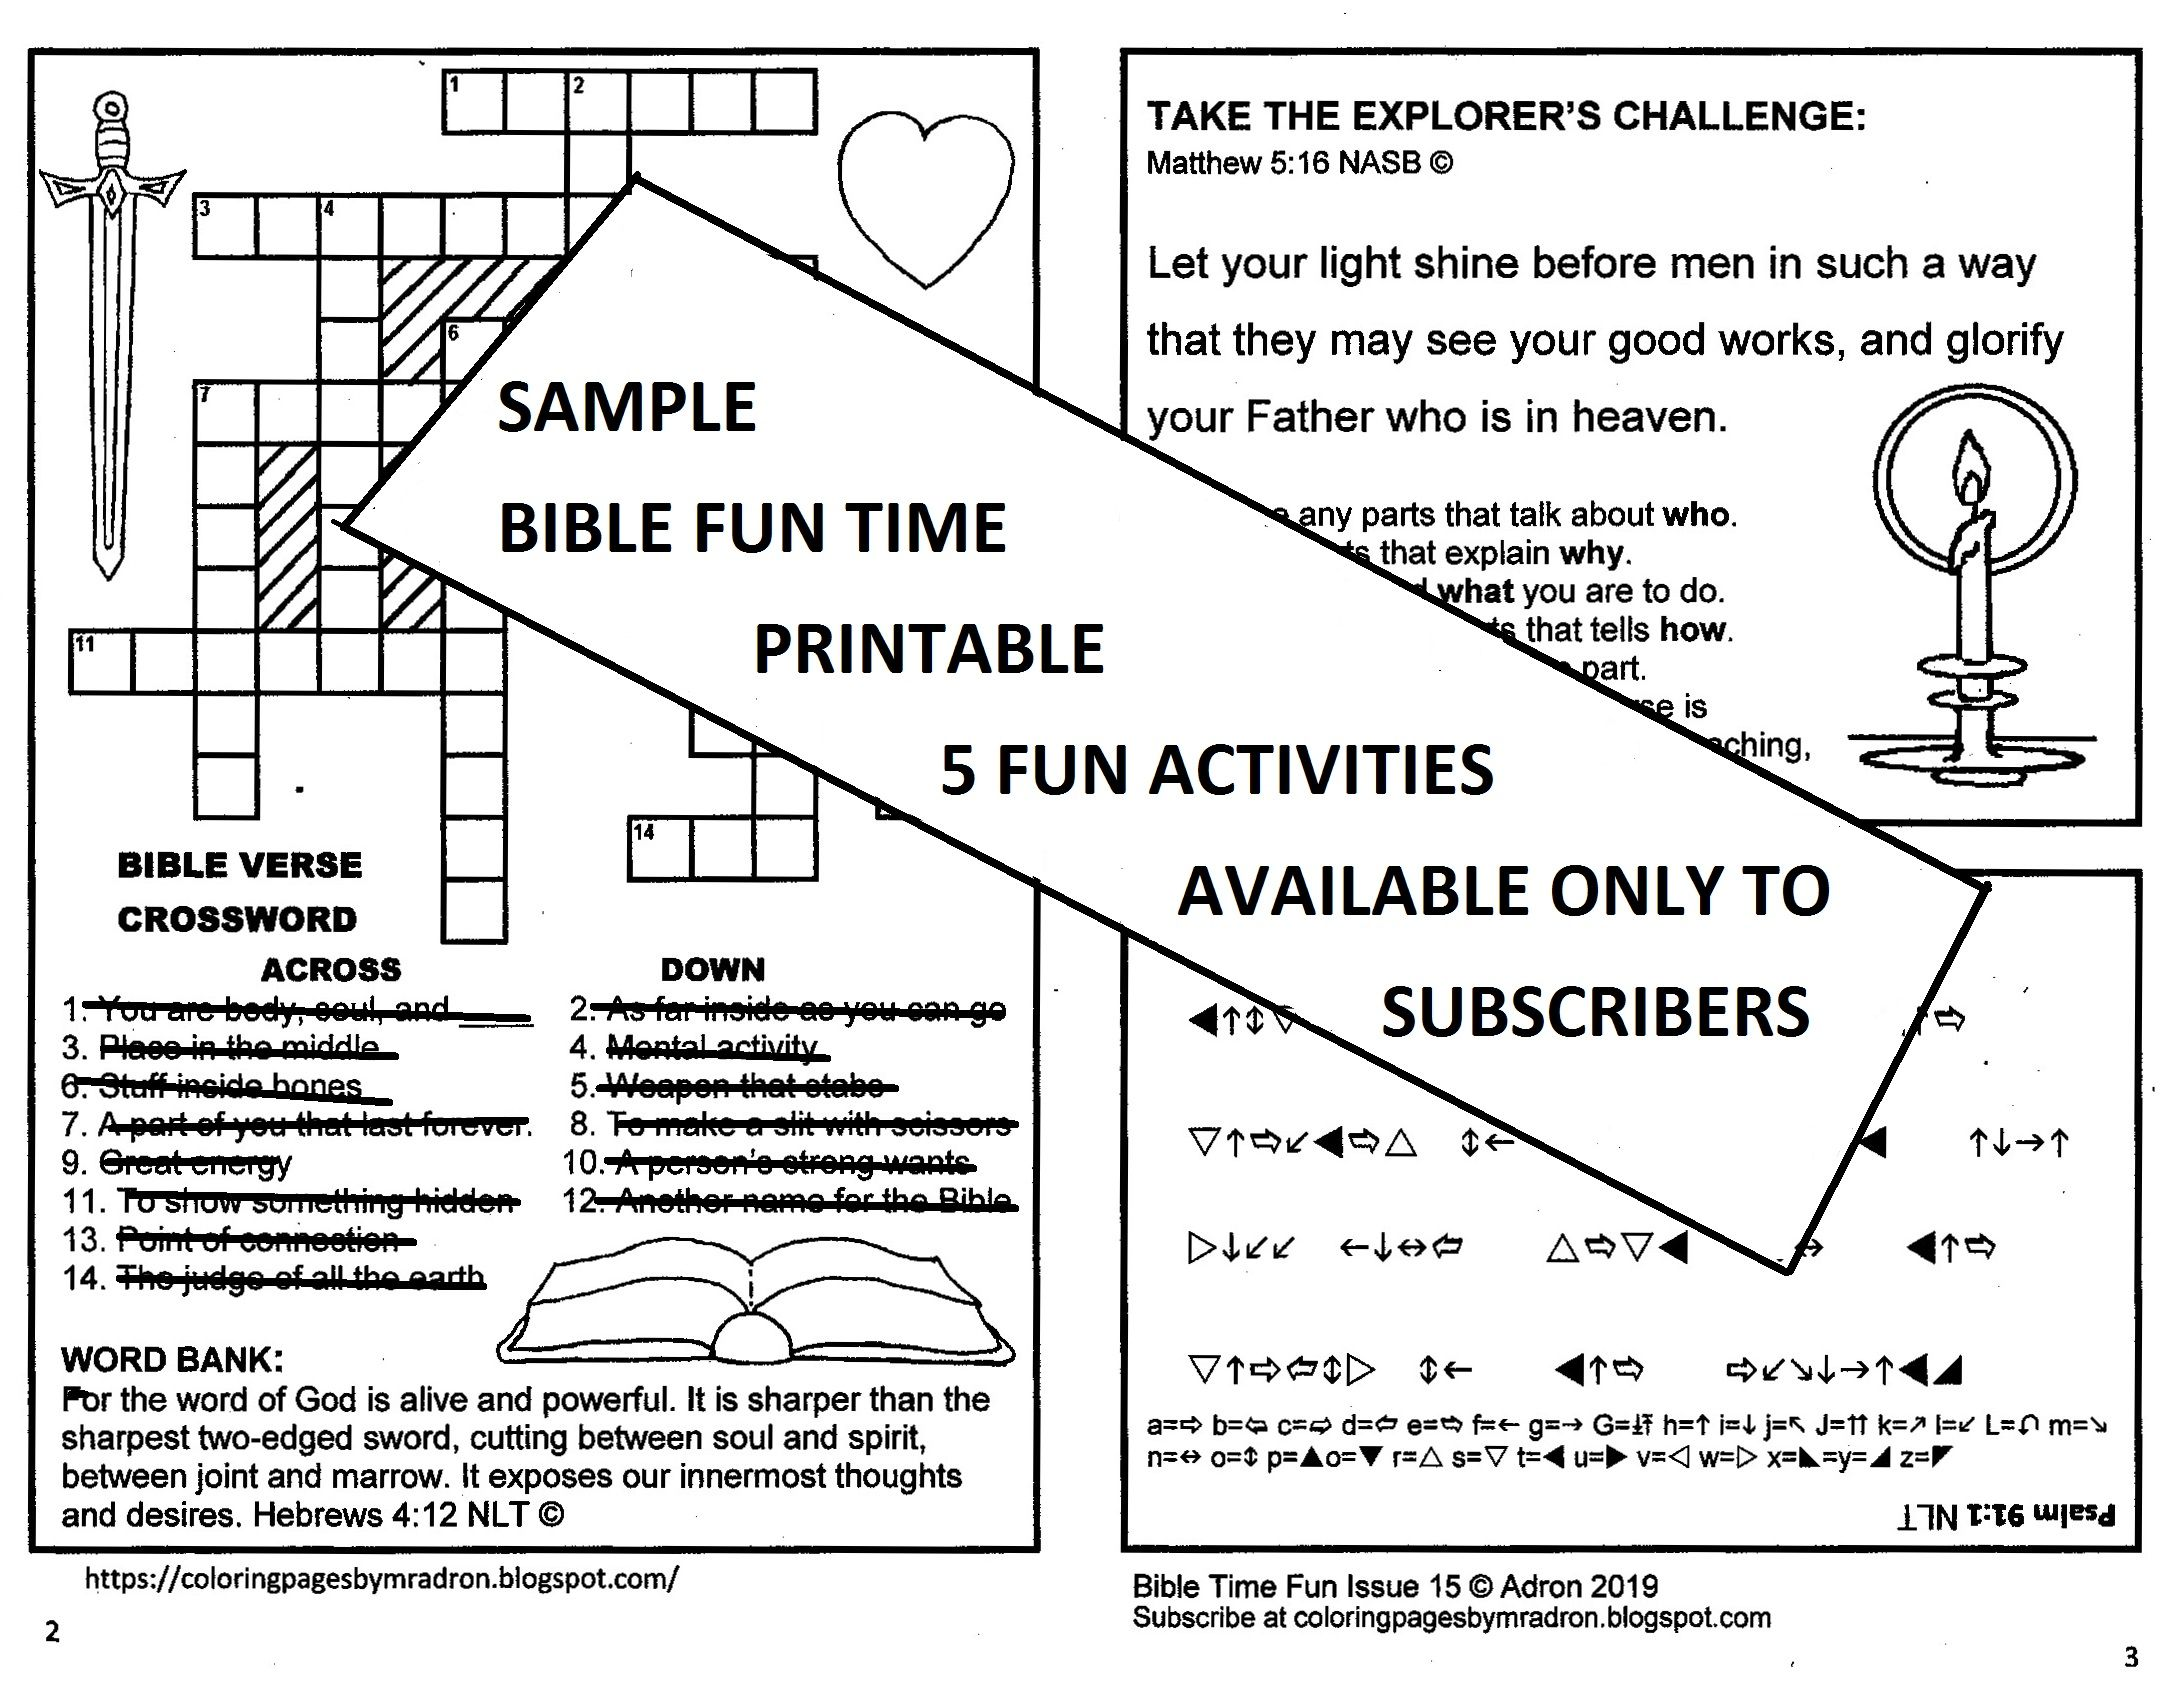 Bible Fun Times Kids Handout With Acts 2 21 Matthew 5 16